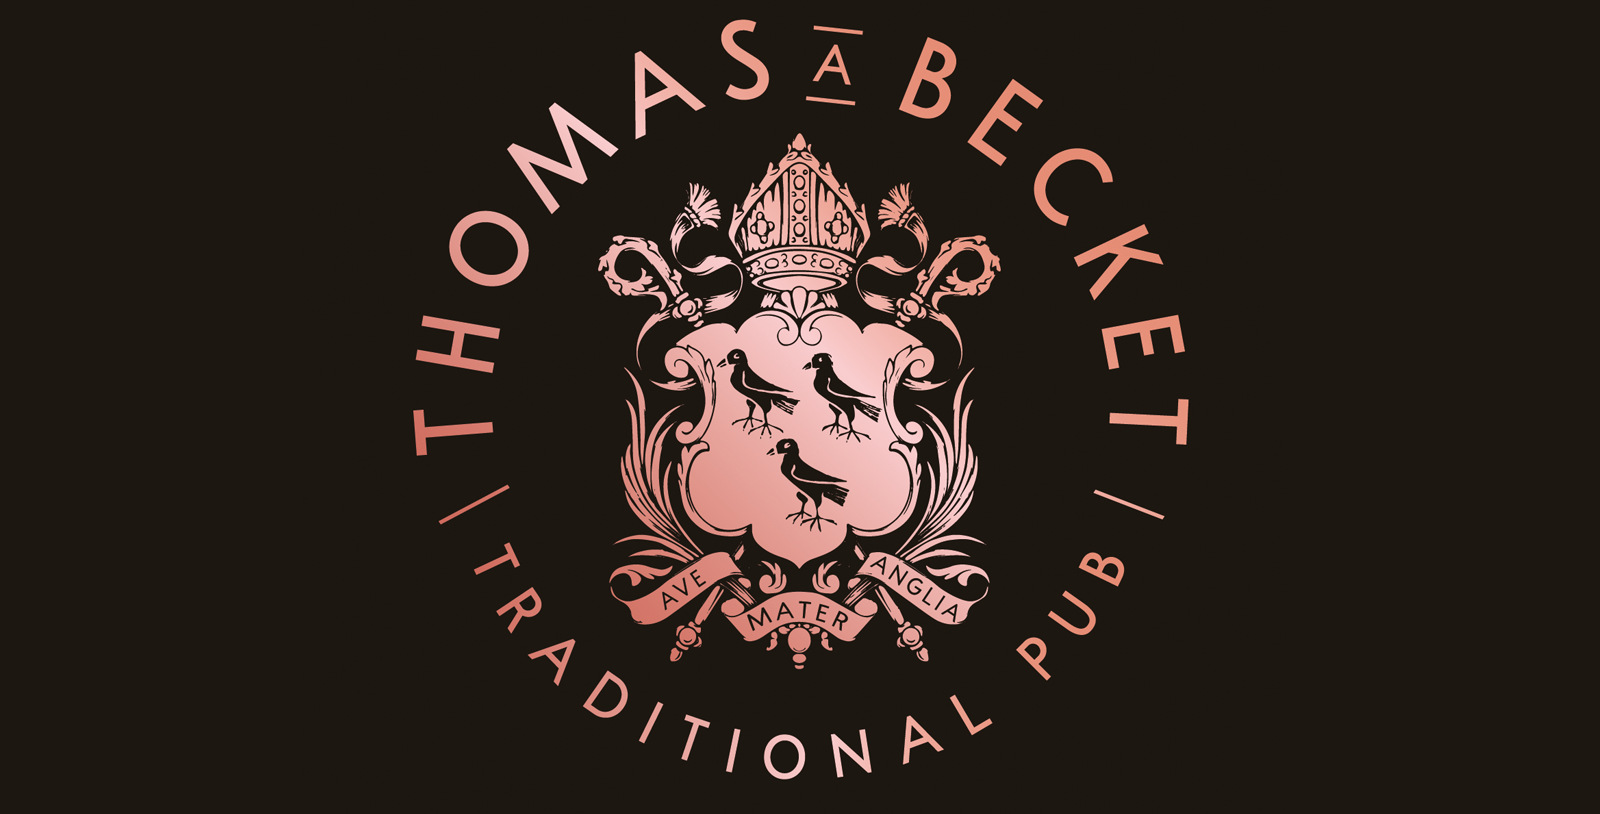 The Thomas A Becket